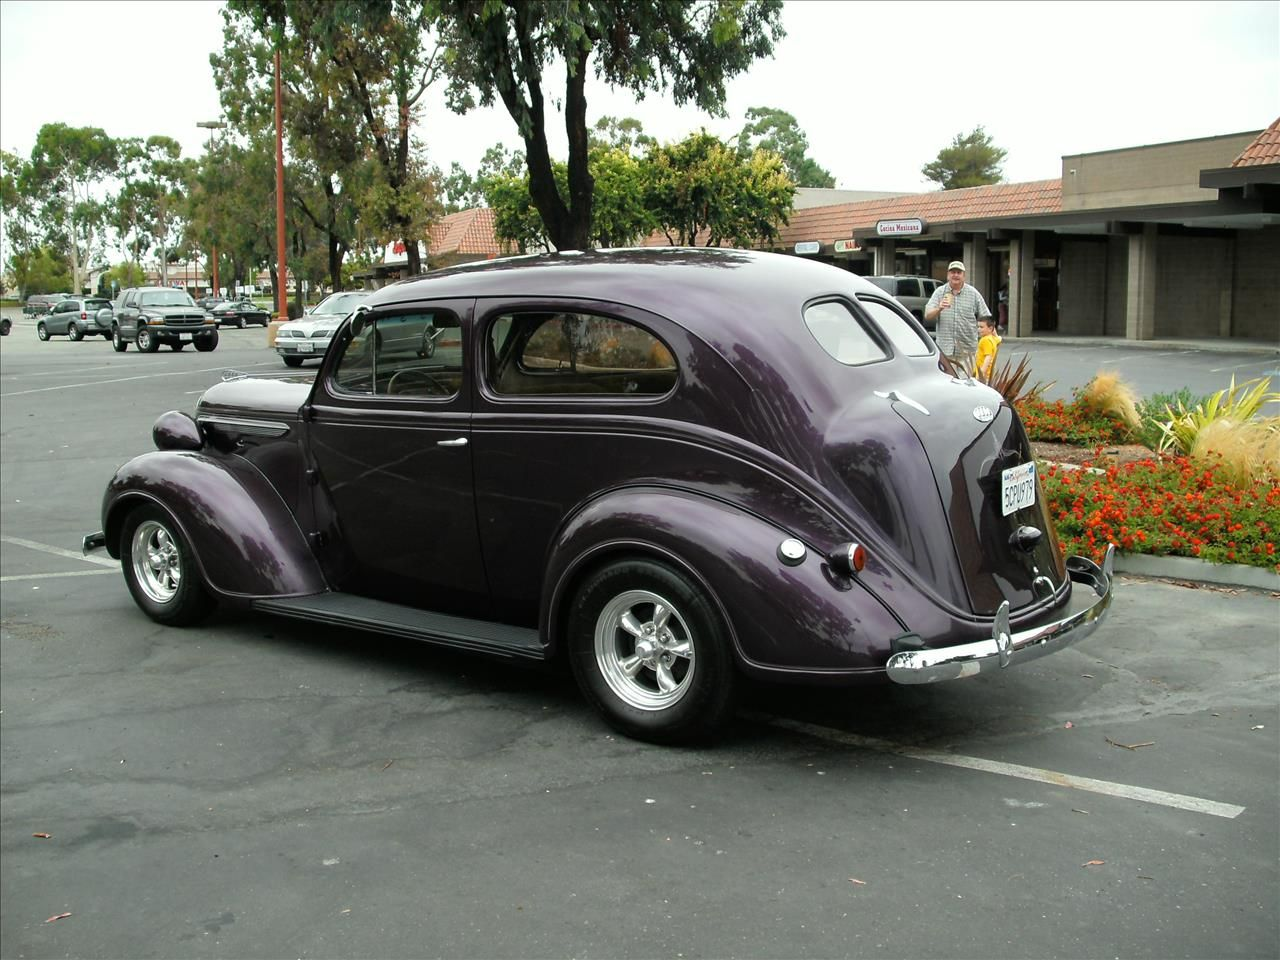 This 1938 plymouth sedan is listed on carsforsale com for 28 900 in san luis obispo